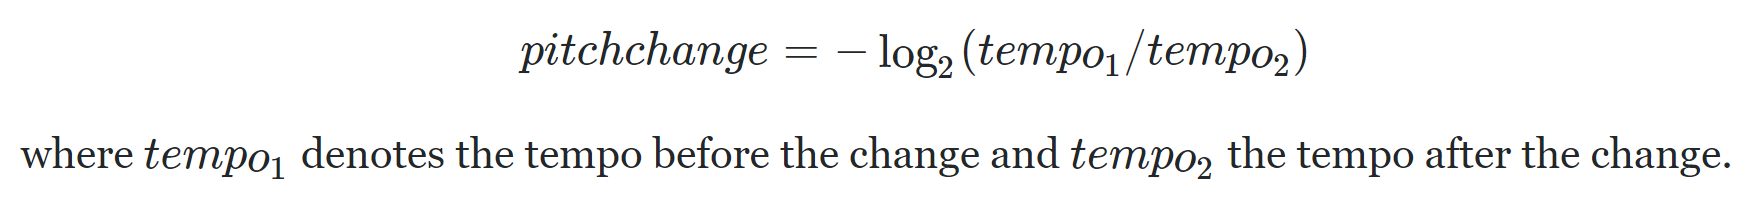 pitchchange = -log(2)(tempo1/tempo2) where tempo1 denotes the tempo before the change and tempo2 the tempo after the change.